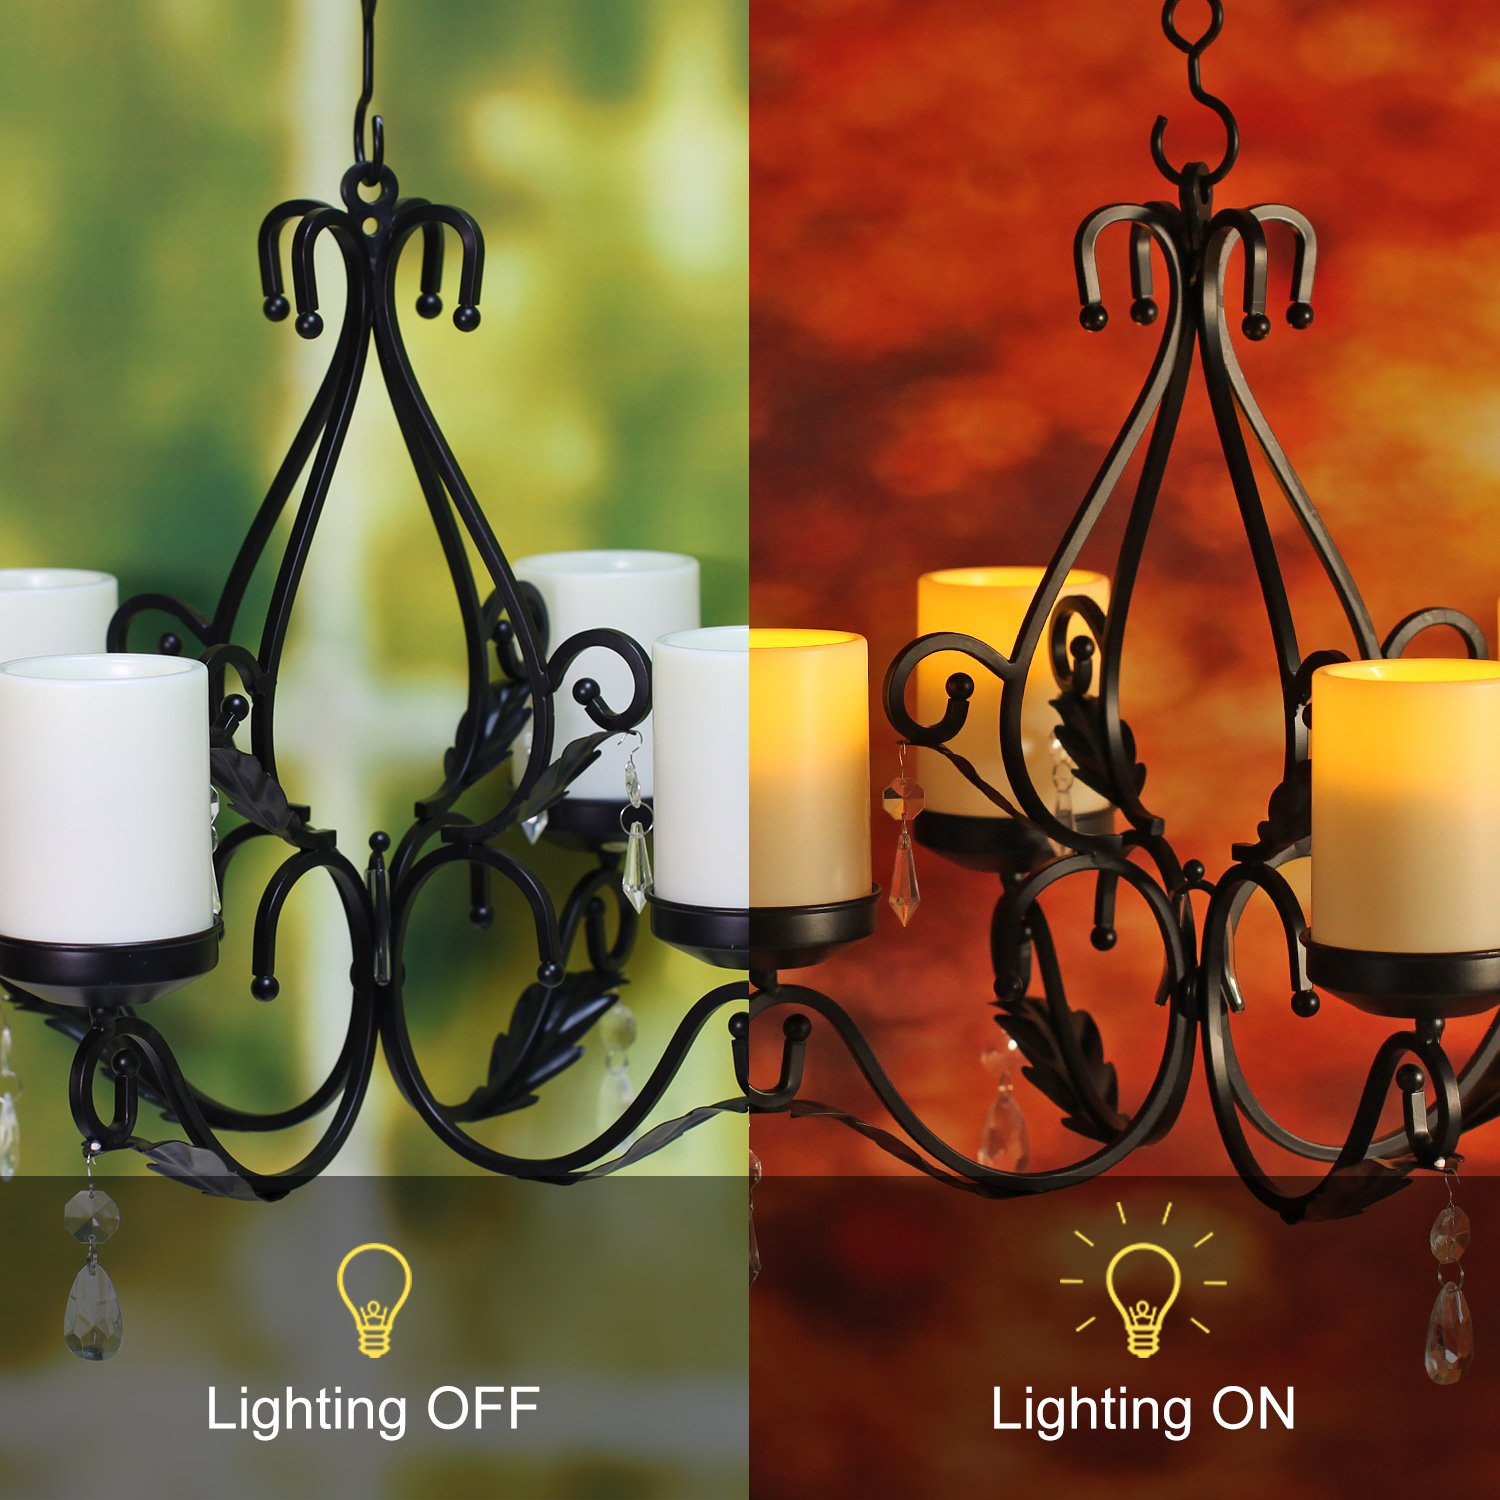 GiveU 3 IN 1 Lighting Chandelier, Metal Wall Sconce Set of 2, Table Centerpiece for Indoor or Outdoor, Chain and Candles Included, Black by GiveU (Image #4)